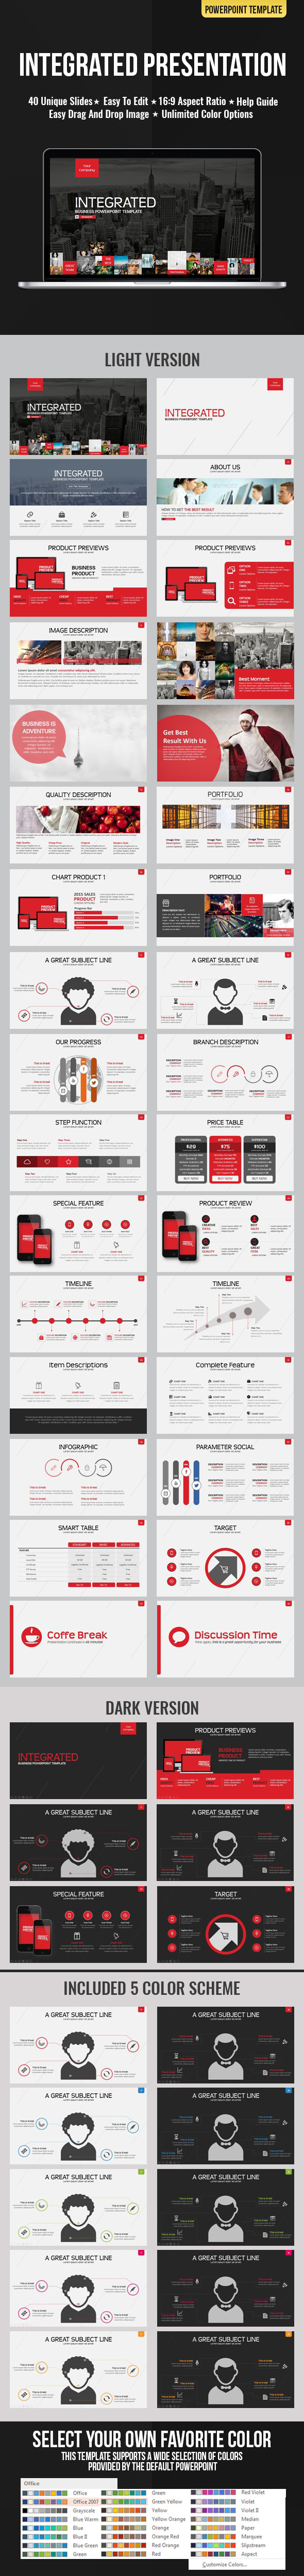 Integrated Presentation - Business PowerPoint Templates